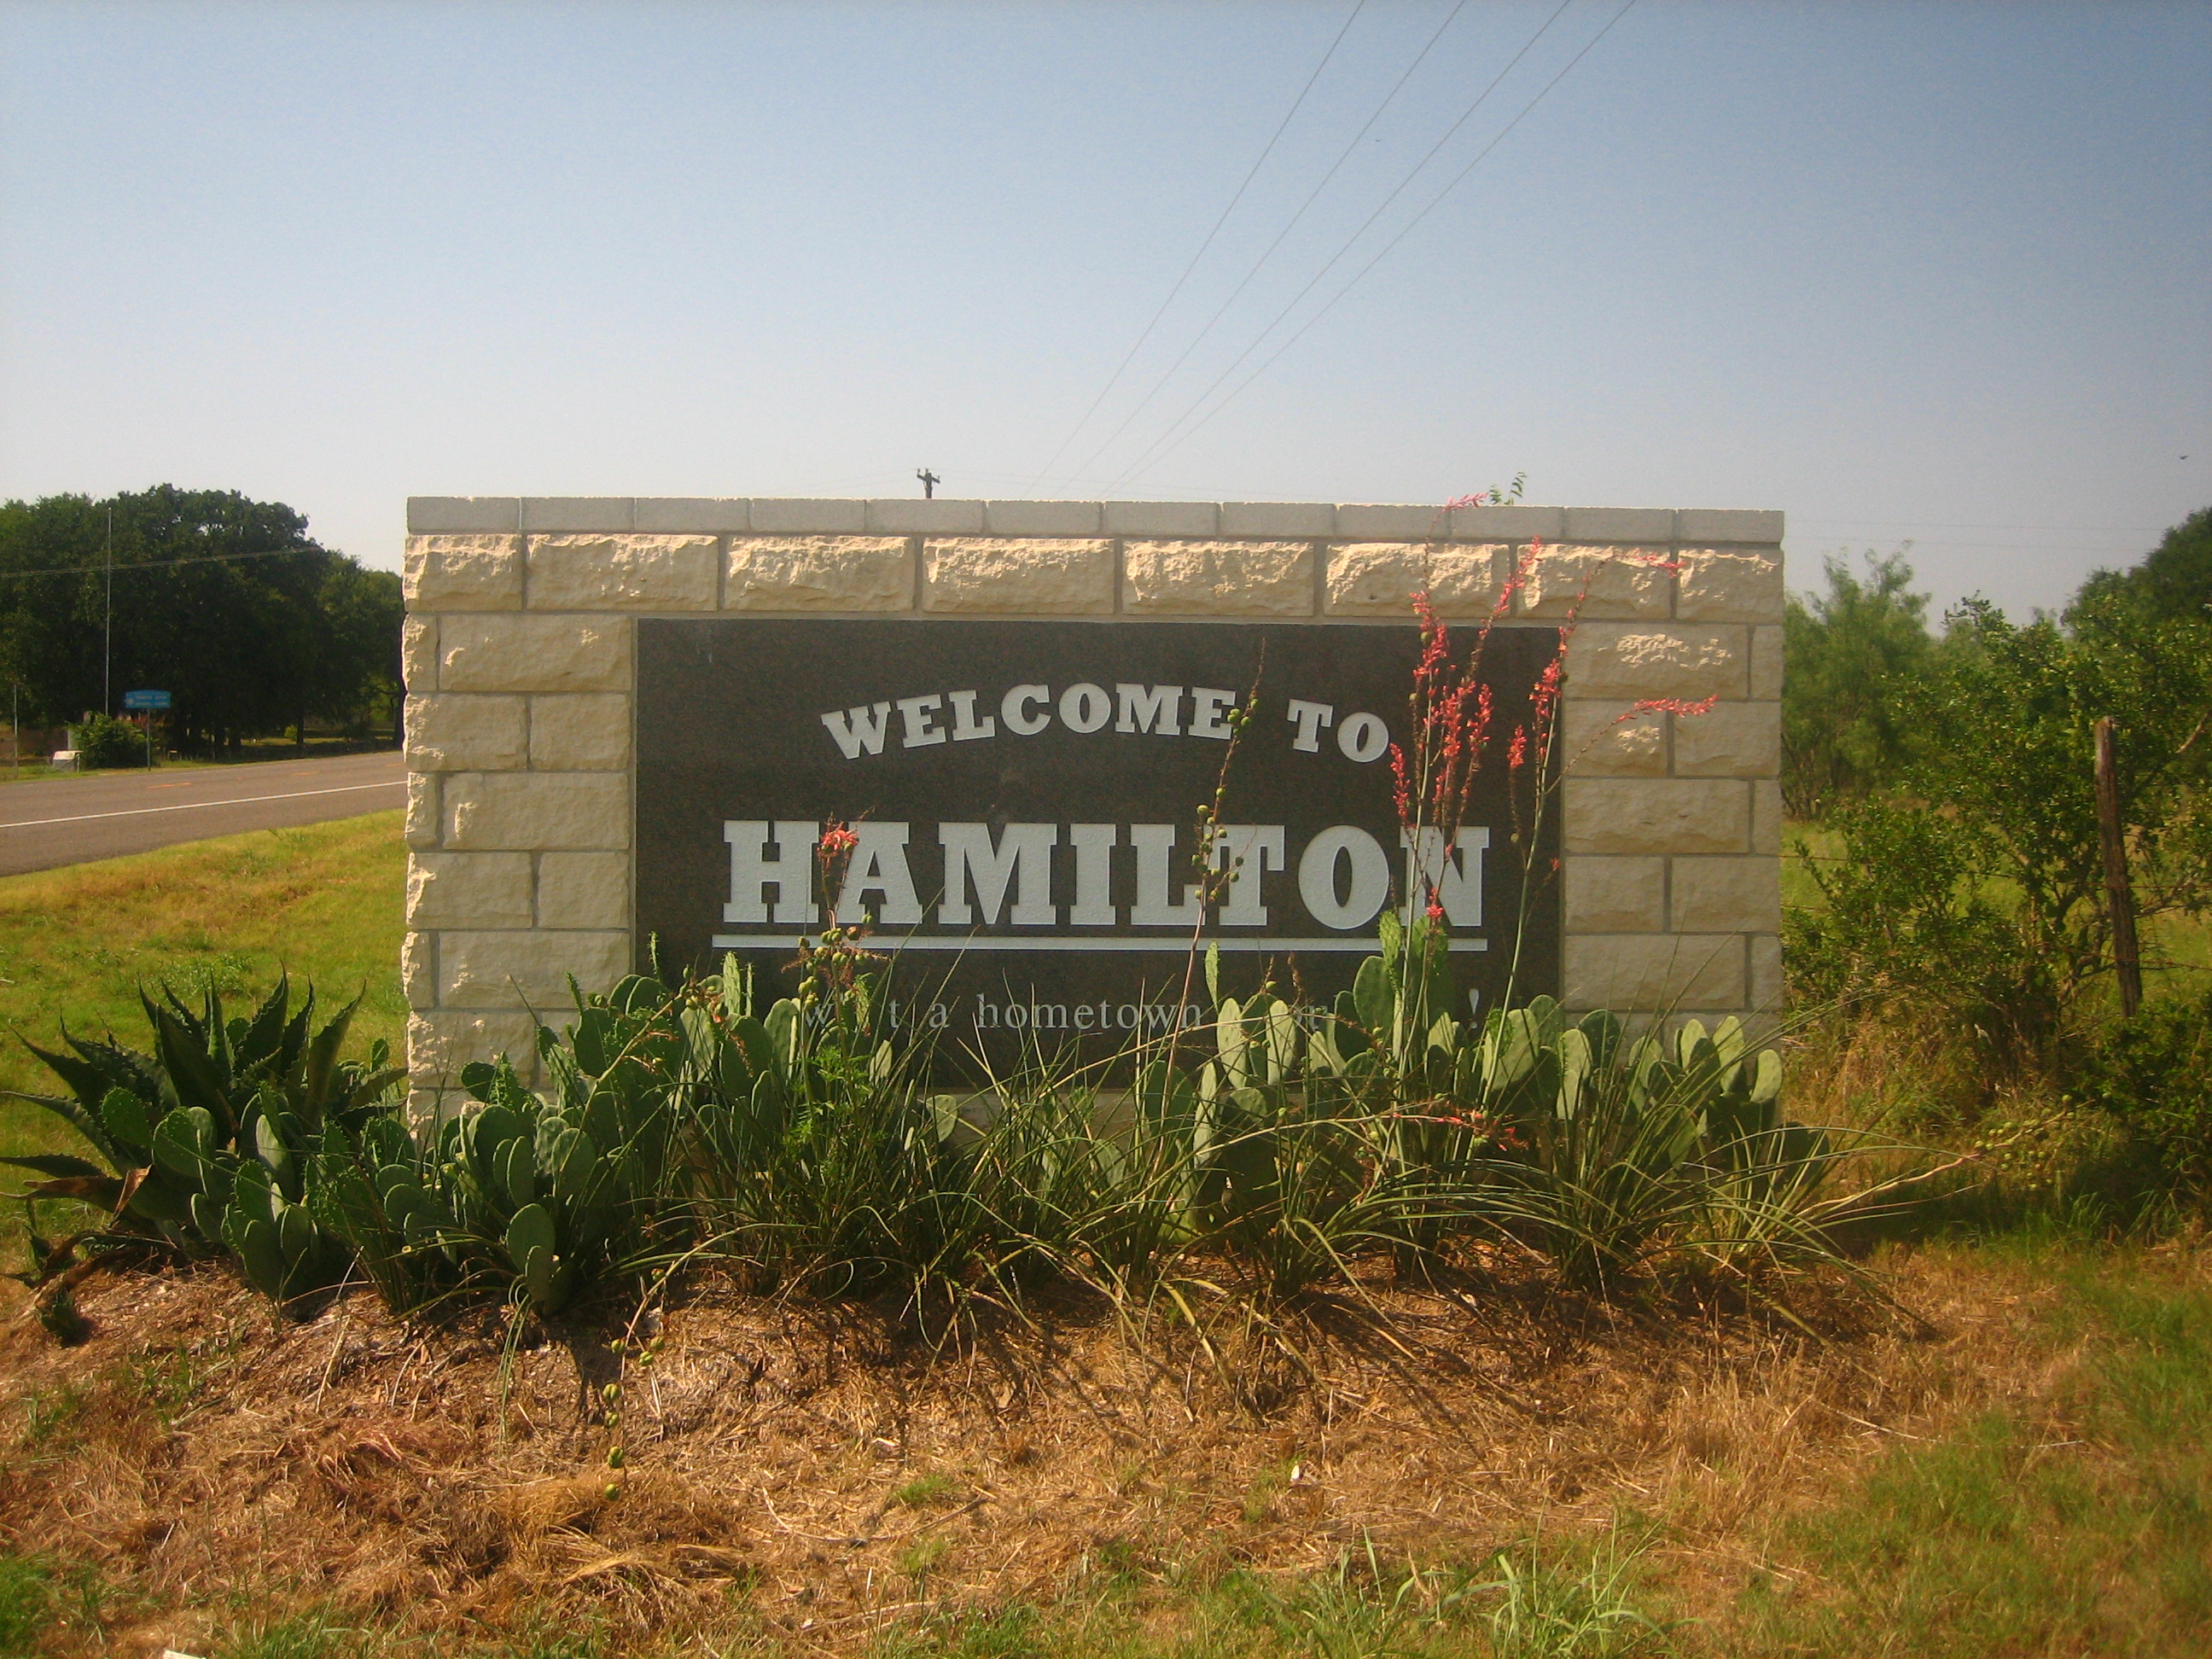 Filehamilton, Texas, Welcoming Sign Img 0772jpg  Wikipedia. Chevy Cruze Recalls 2012 Online Solar Courses. Electronic Mailing List Software. Humana Medicare Supplement Plans. Brisbane Graduate School Of Business. San Fernando Mental Health Center. Vehicle Maintenance Tracking Software. Dental Implants Santa Rosa Ca. Sending A Video By Email Treatment For Phobia